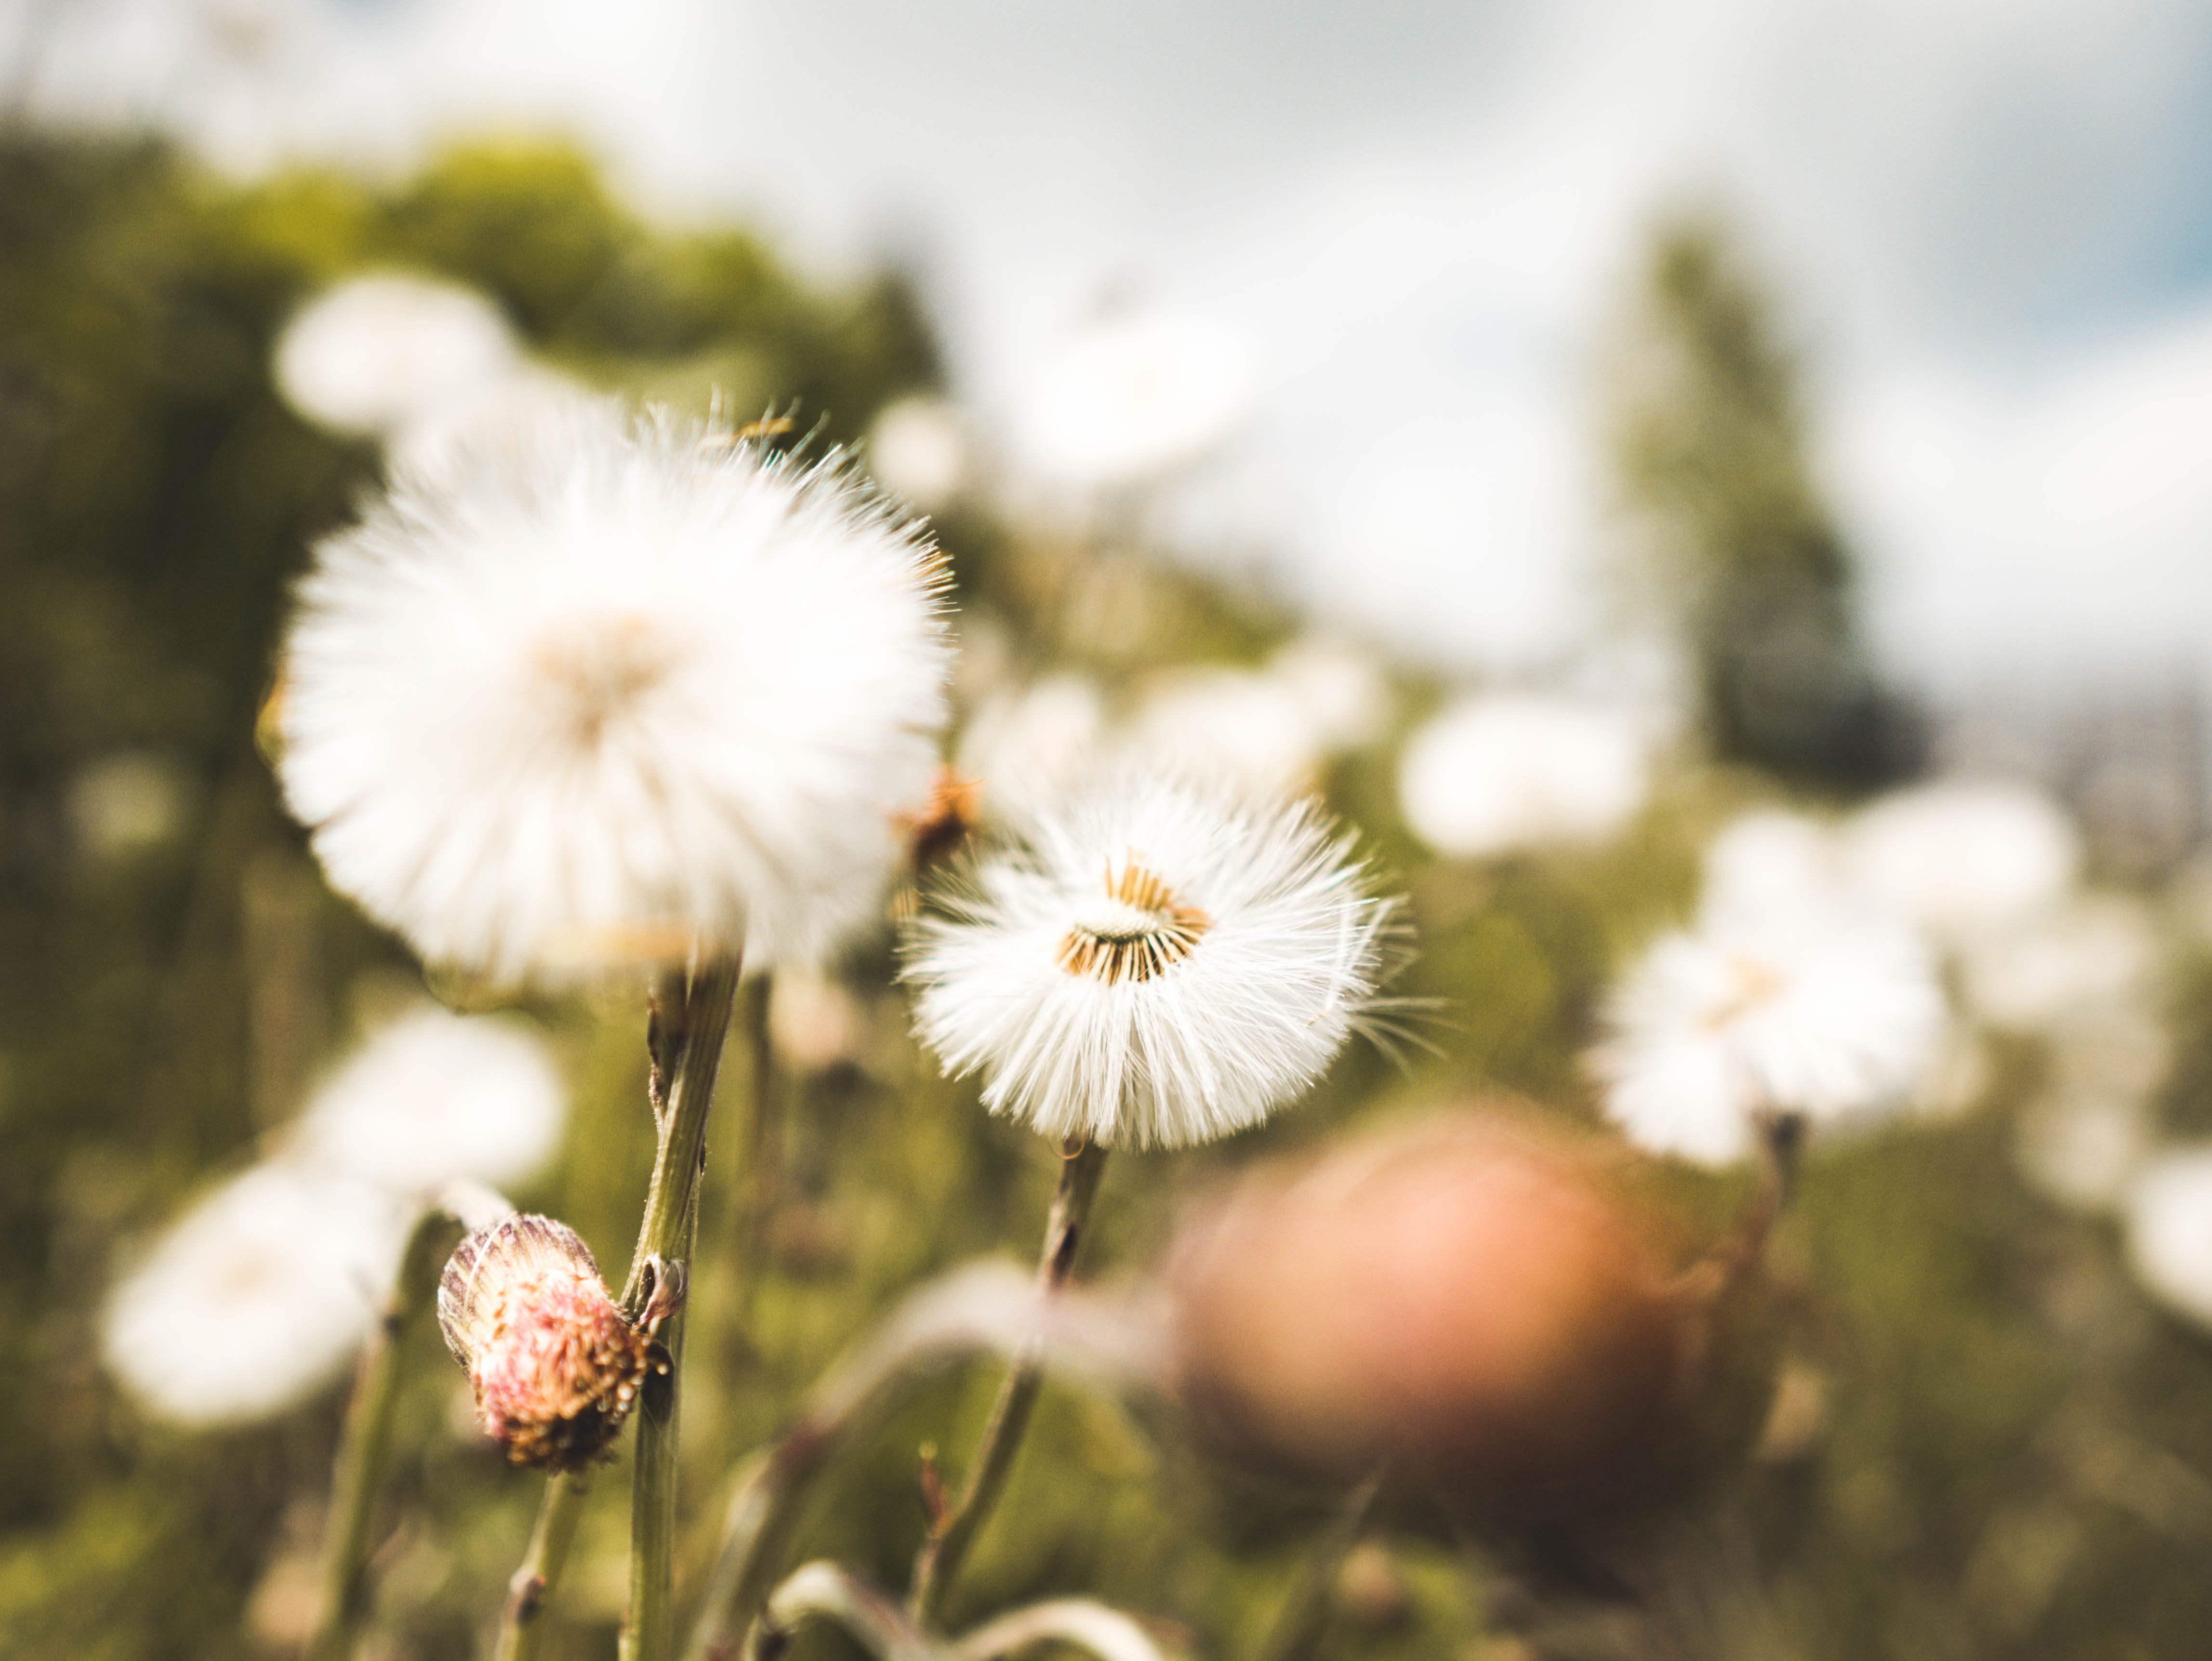 Selective Focus Photography of a Dandelion